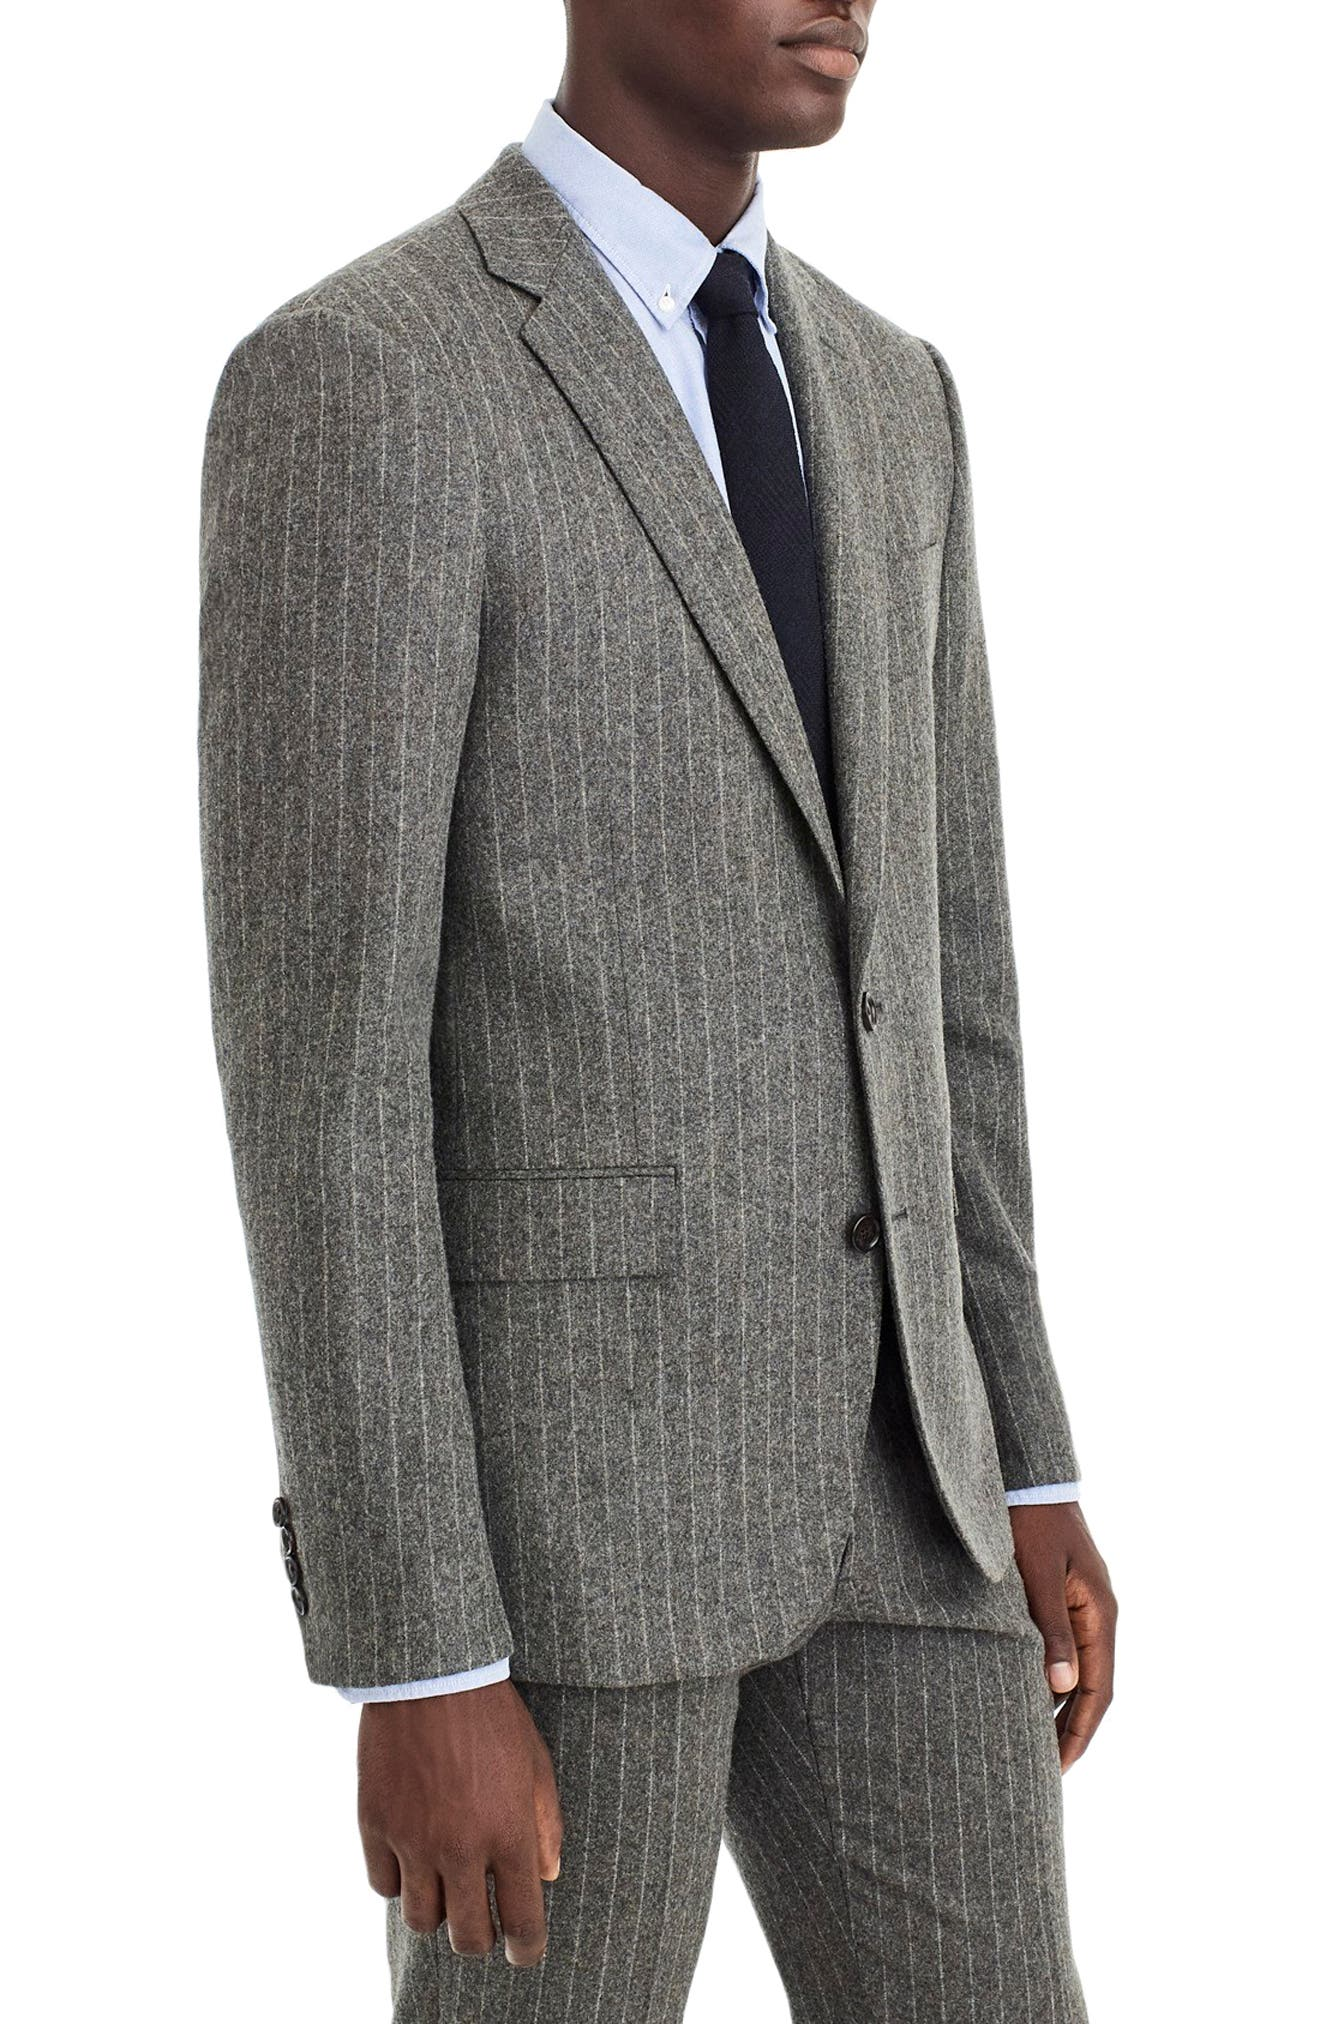 Ludlow Slim Fit Chalk Stripe Wool Blend Suit Jacket,                             Alternate thumbnail 3, color,                             LIGHT CHARCOAL CHALK STRIPE